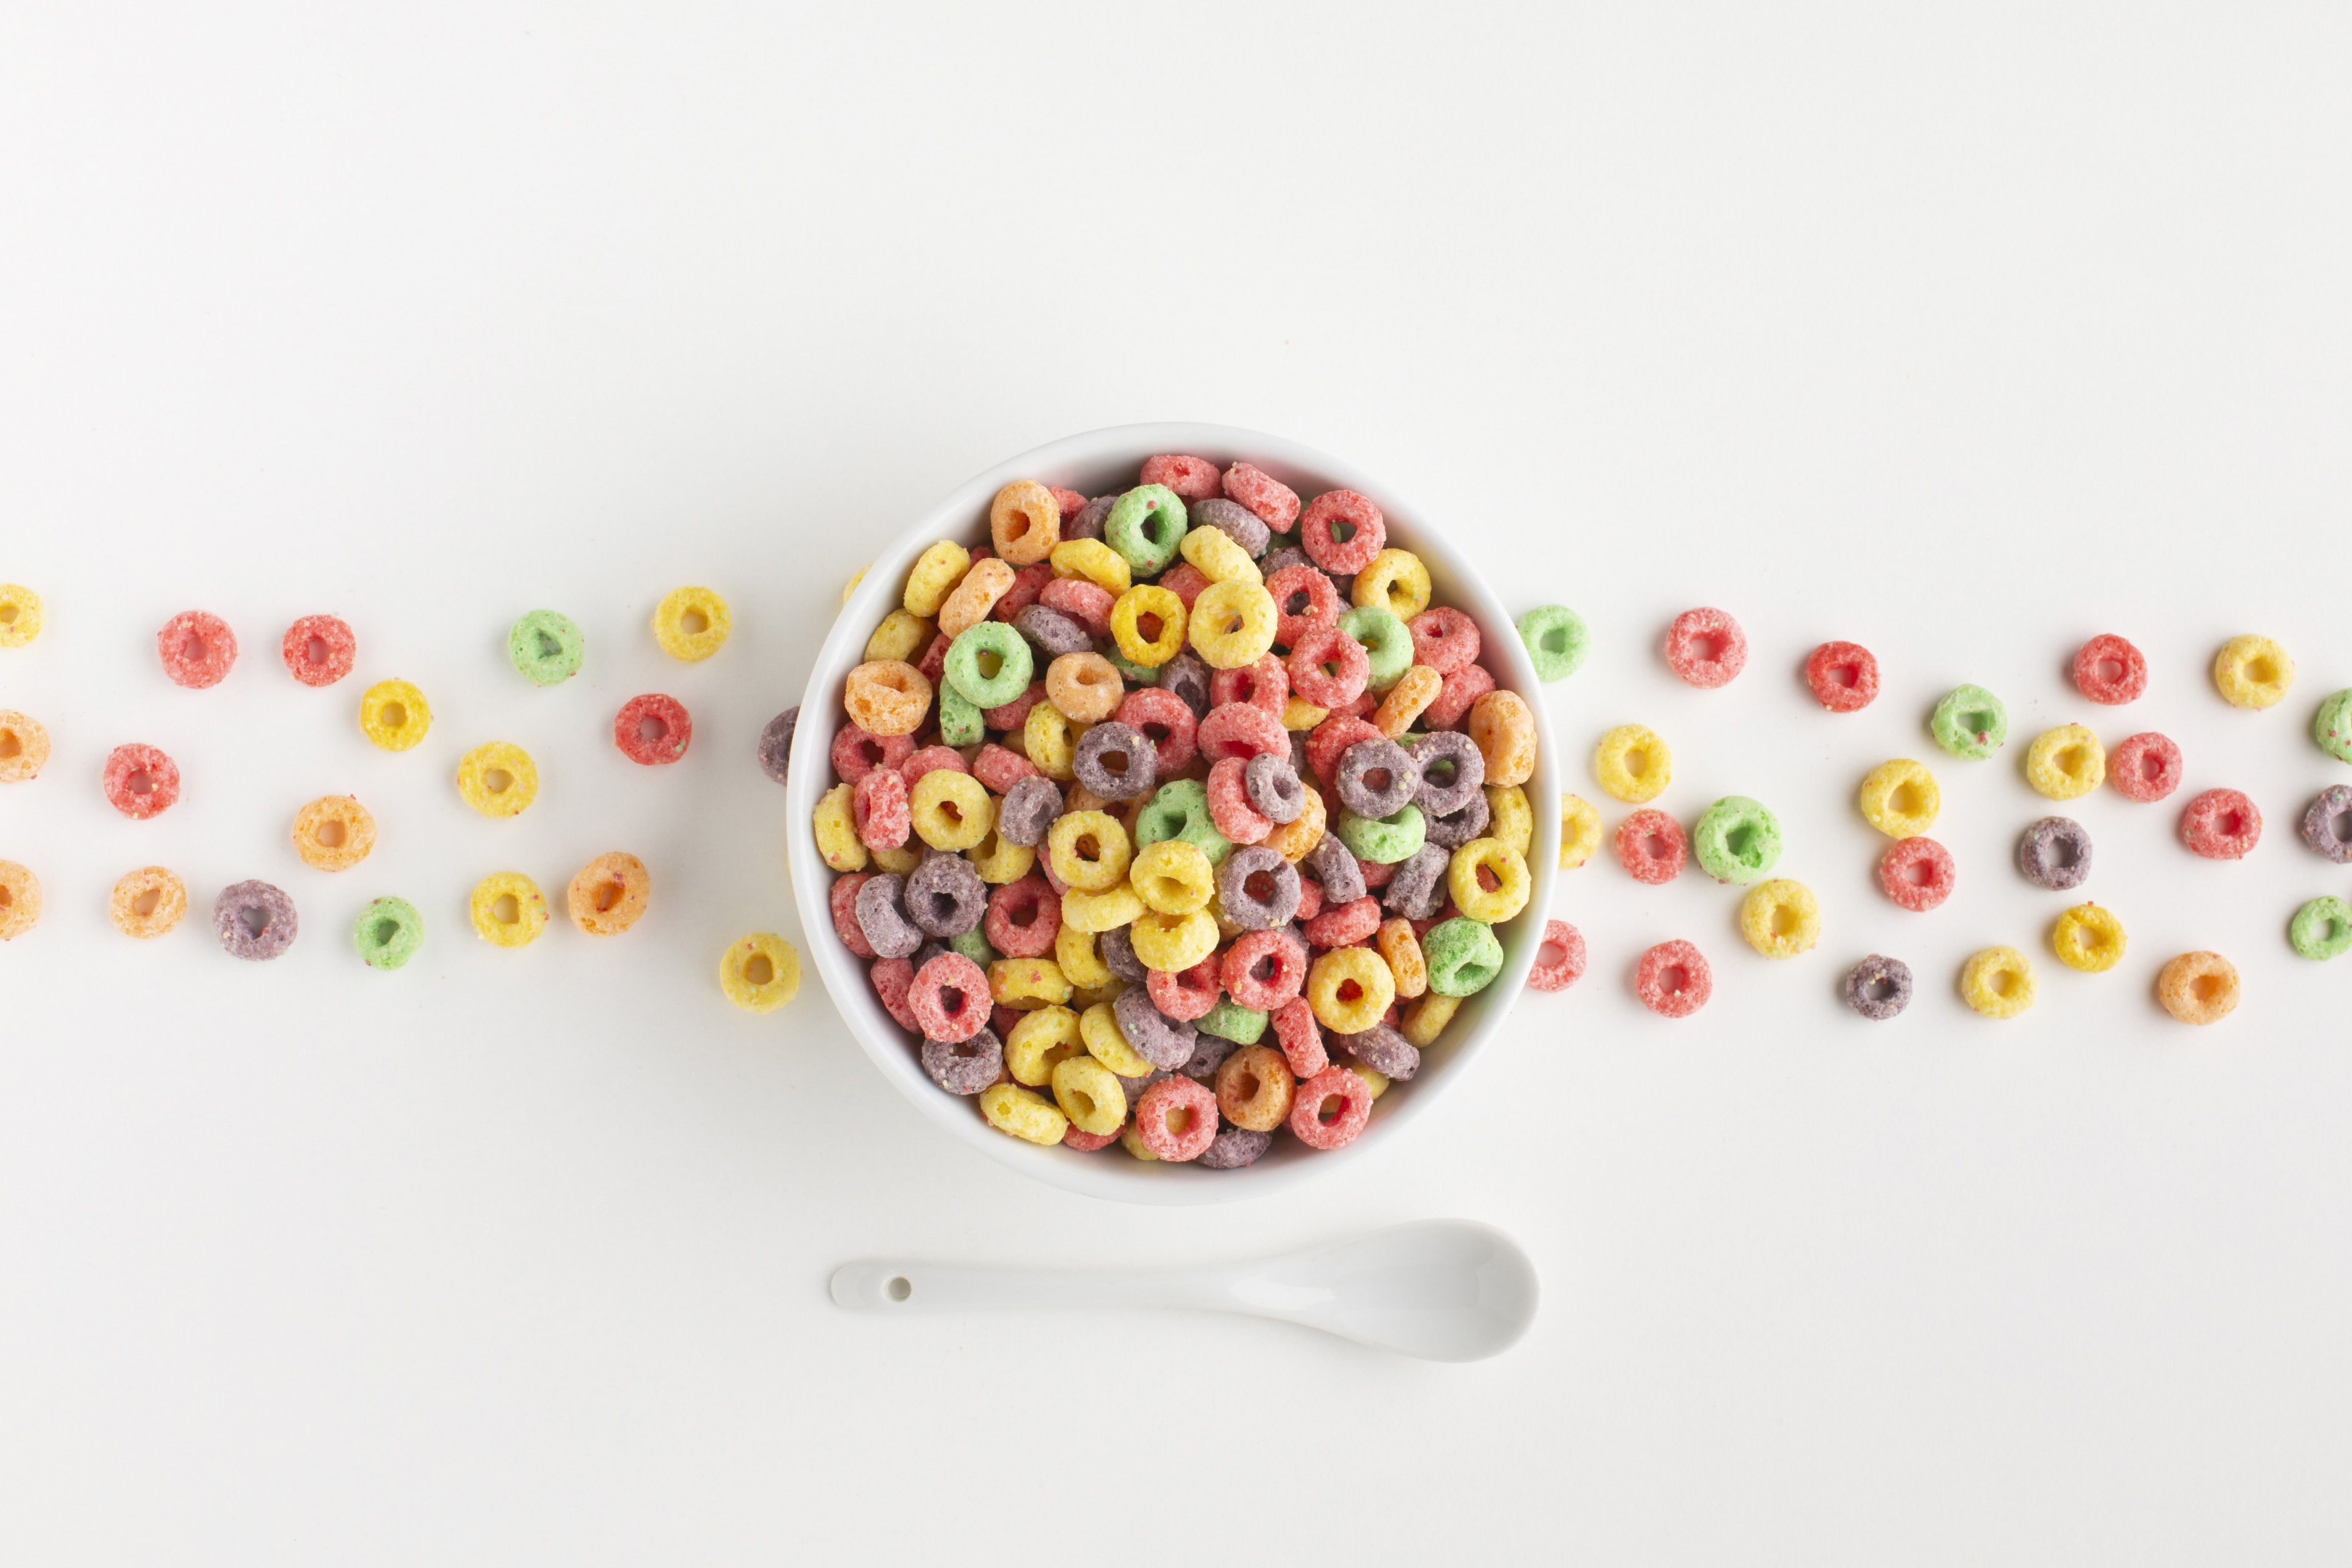 Arrangement of colorful and sweet cereal